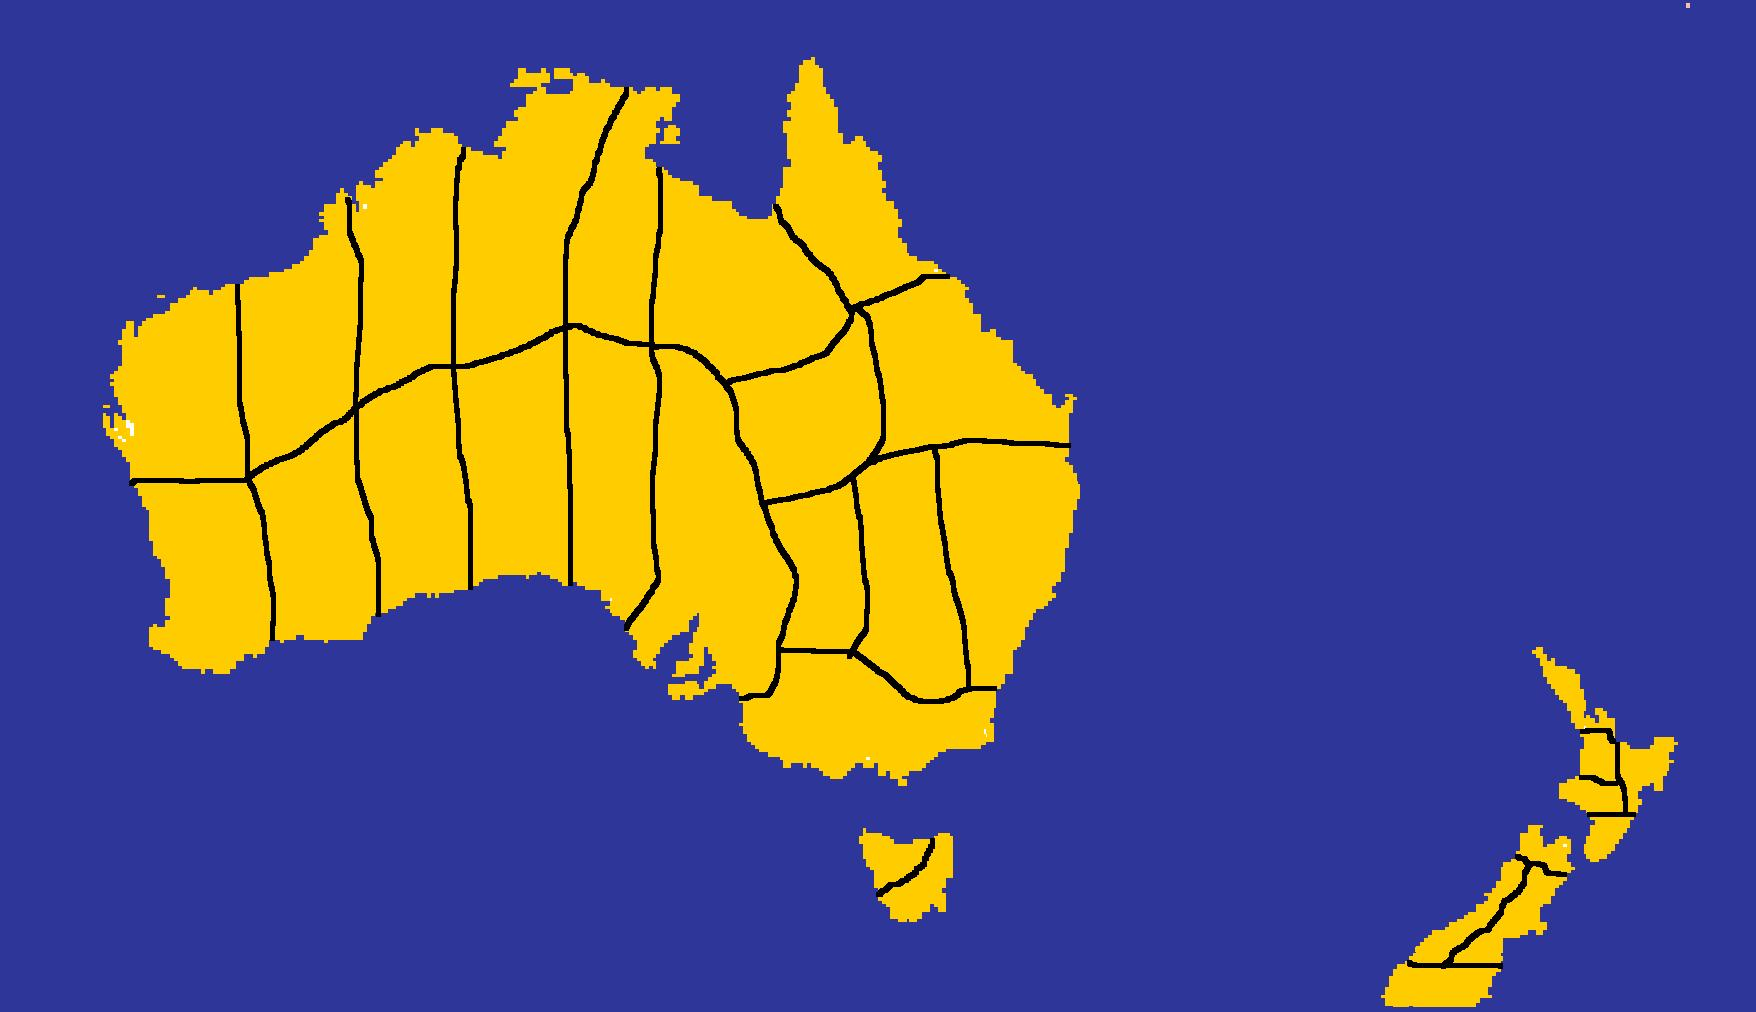 Thunda down under map 4.jpg